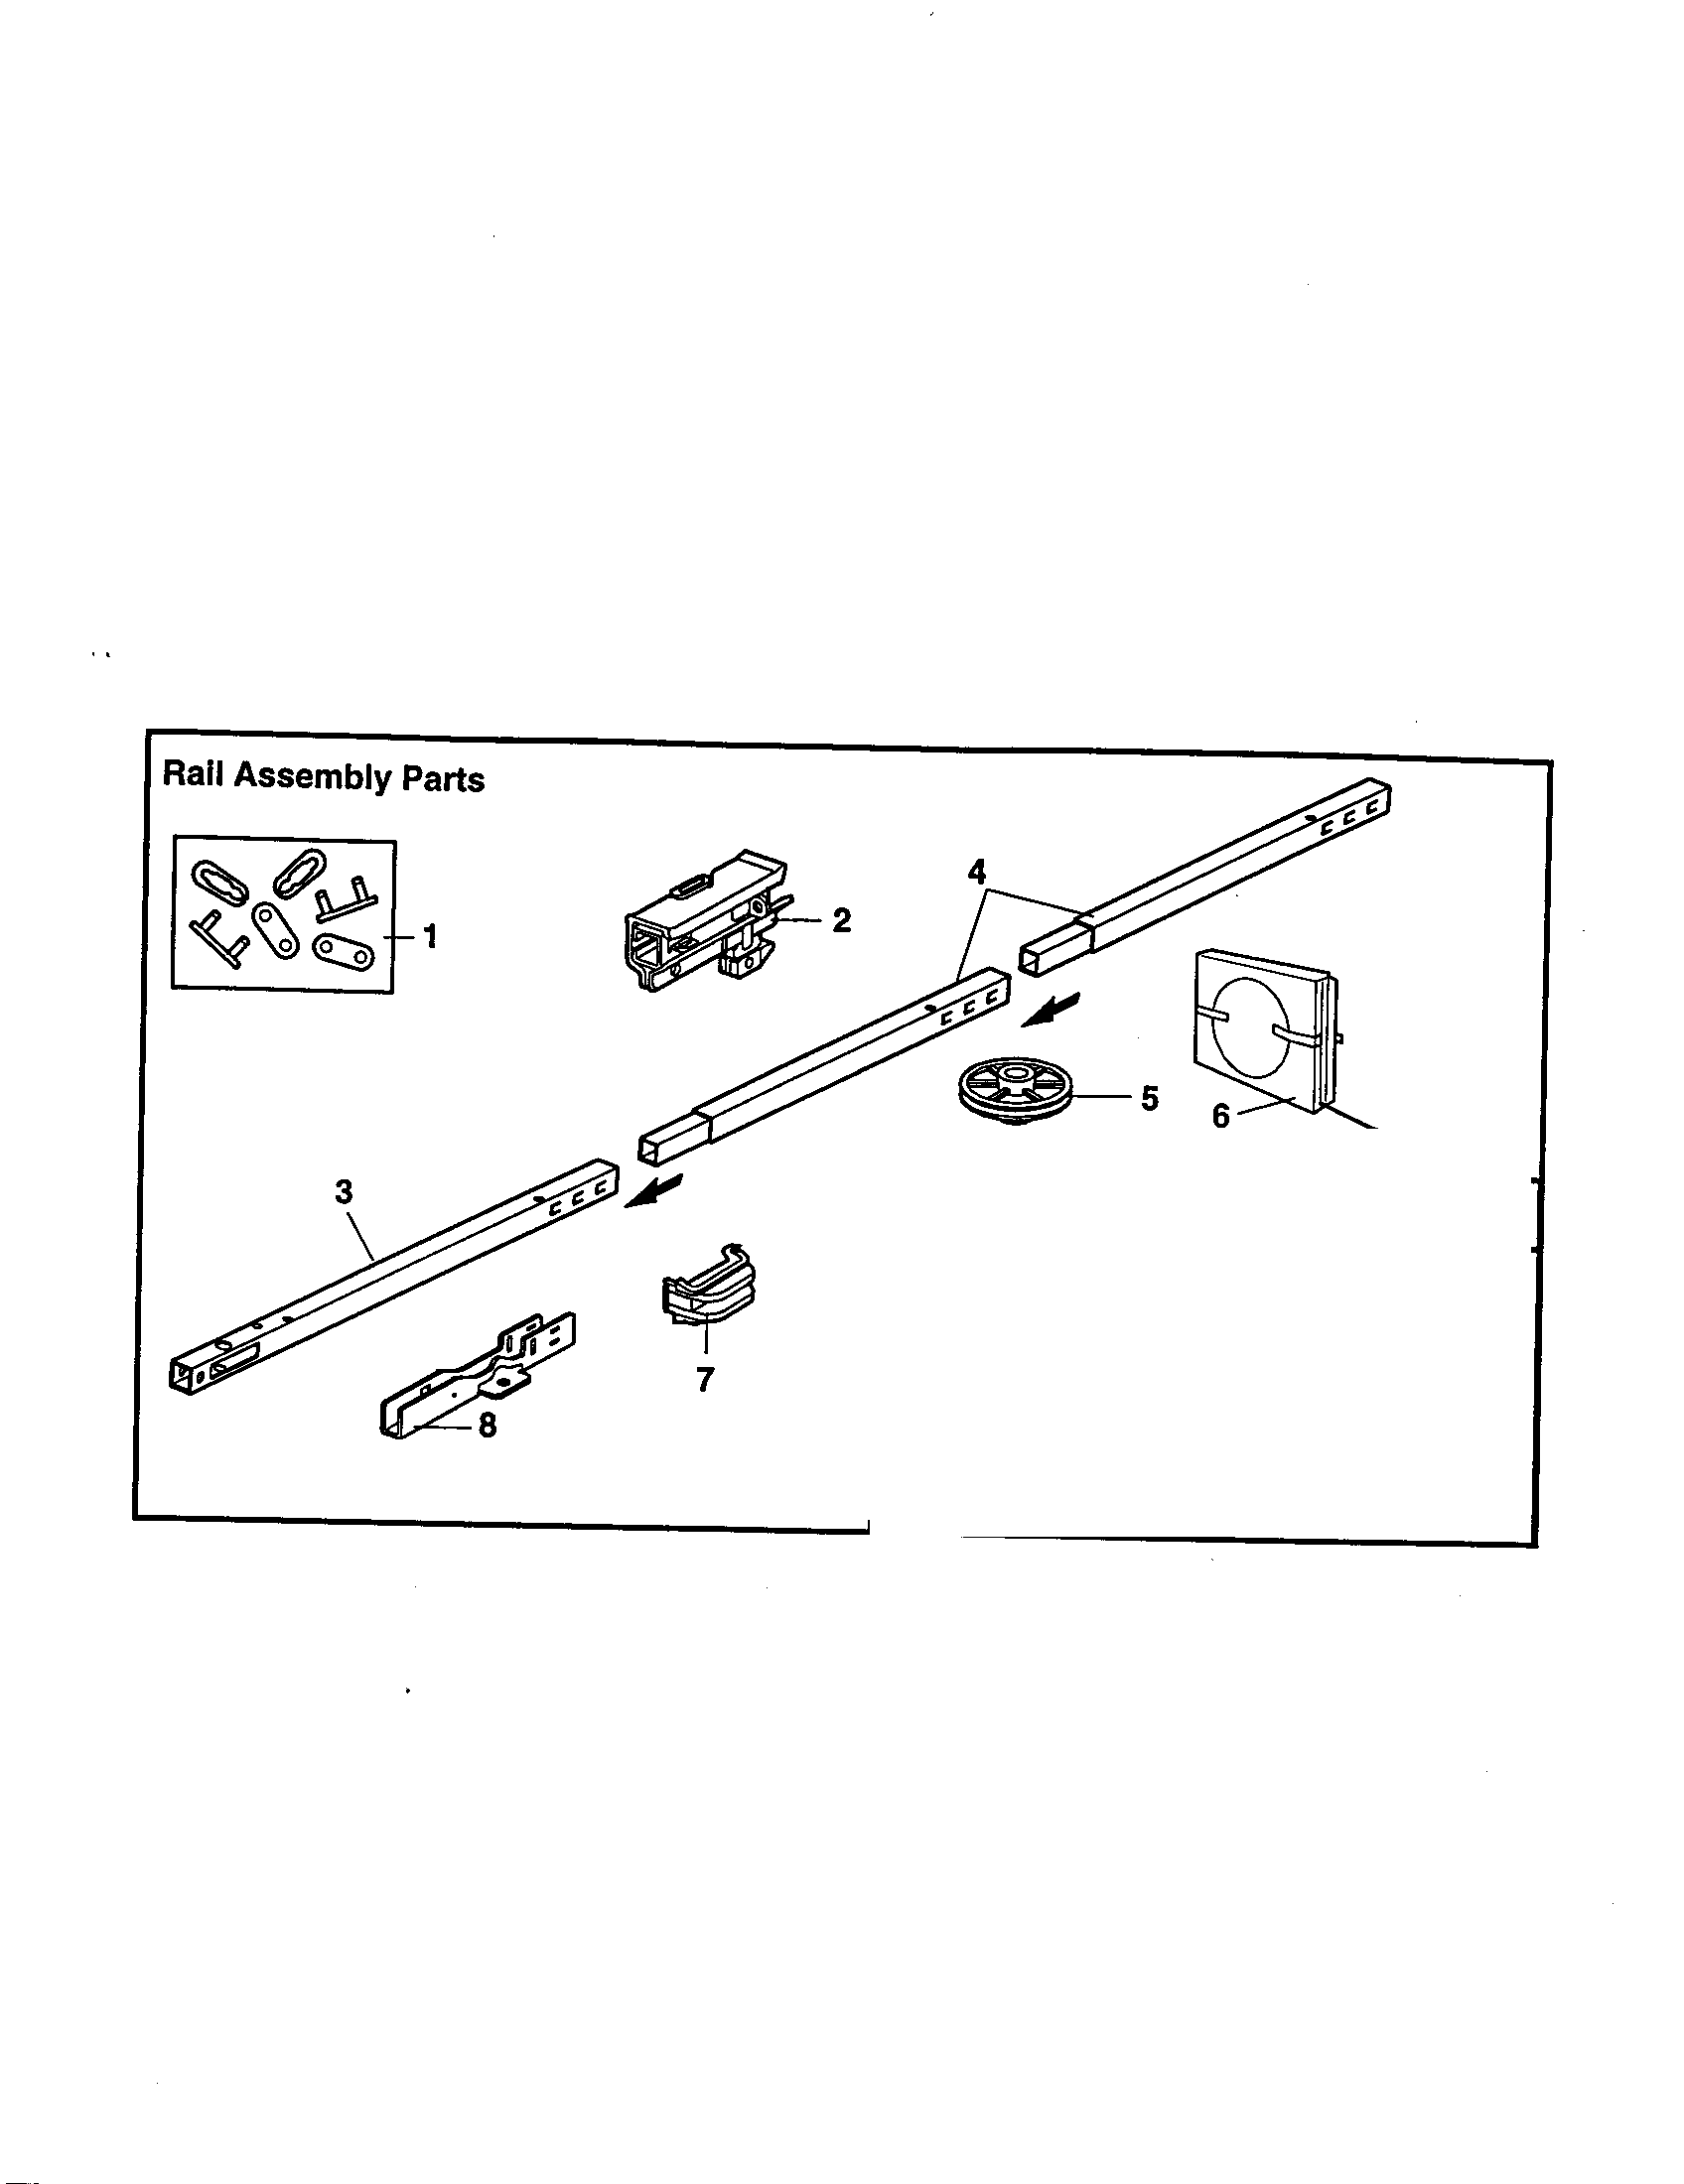 Garage Door Opener Parts Diagram Rail Assembly Diagram And Parts List For Model 13953960srt